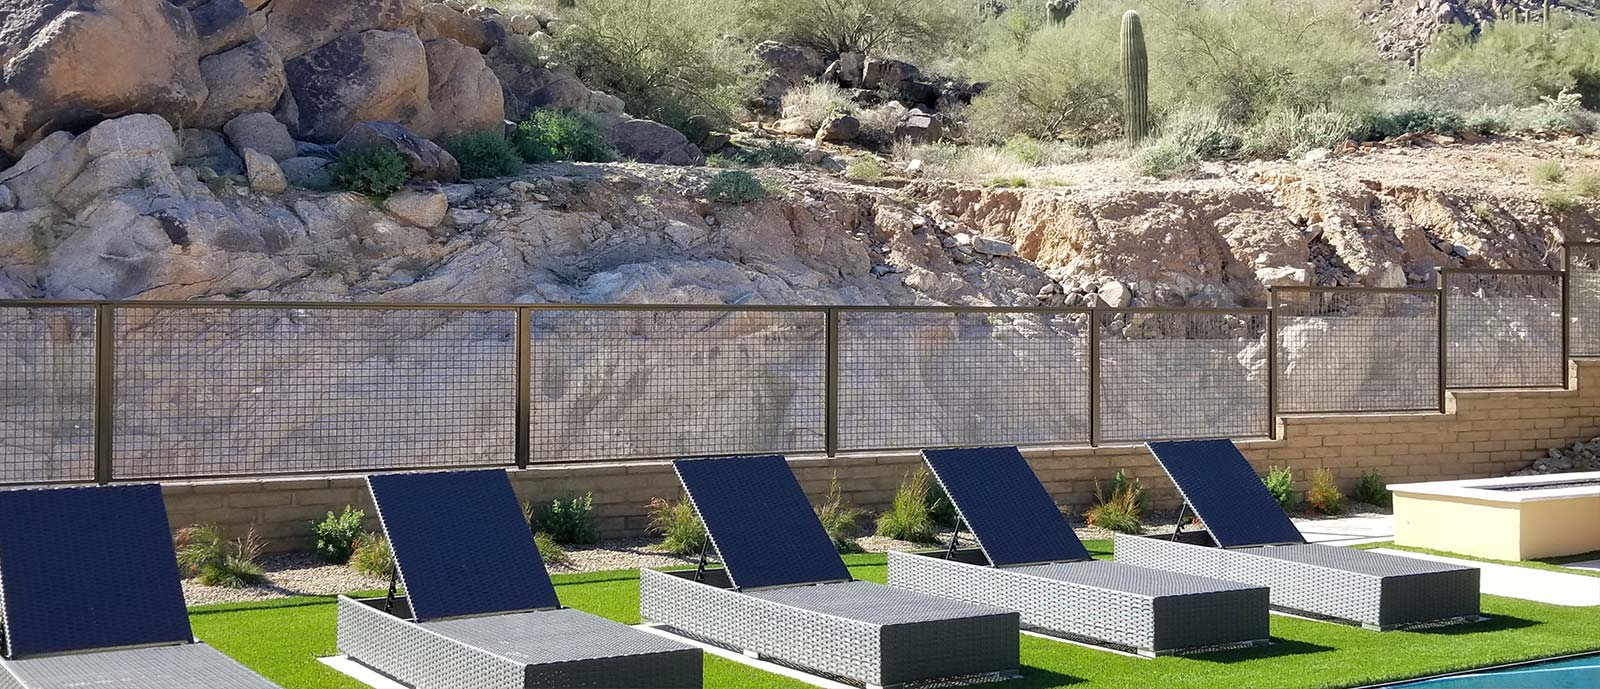 Snake Fence And Rattlesnake Prevention Fencing